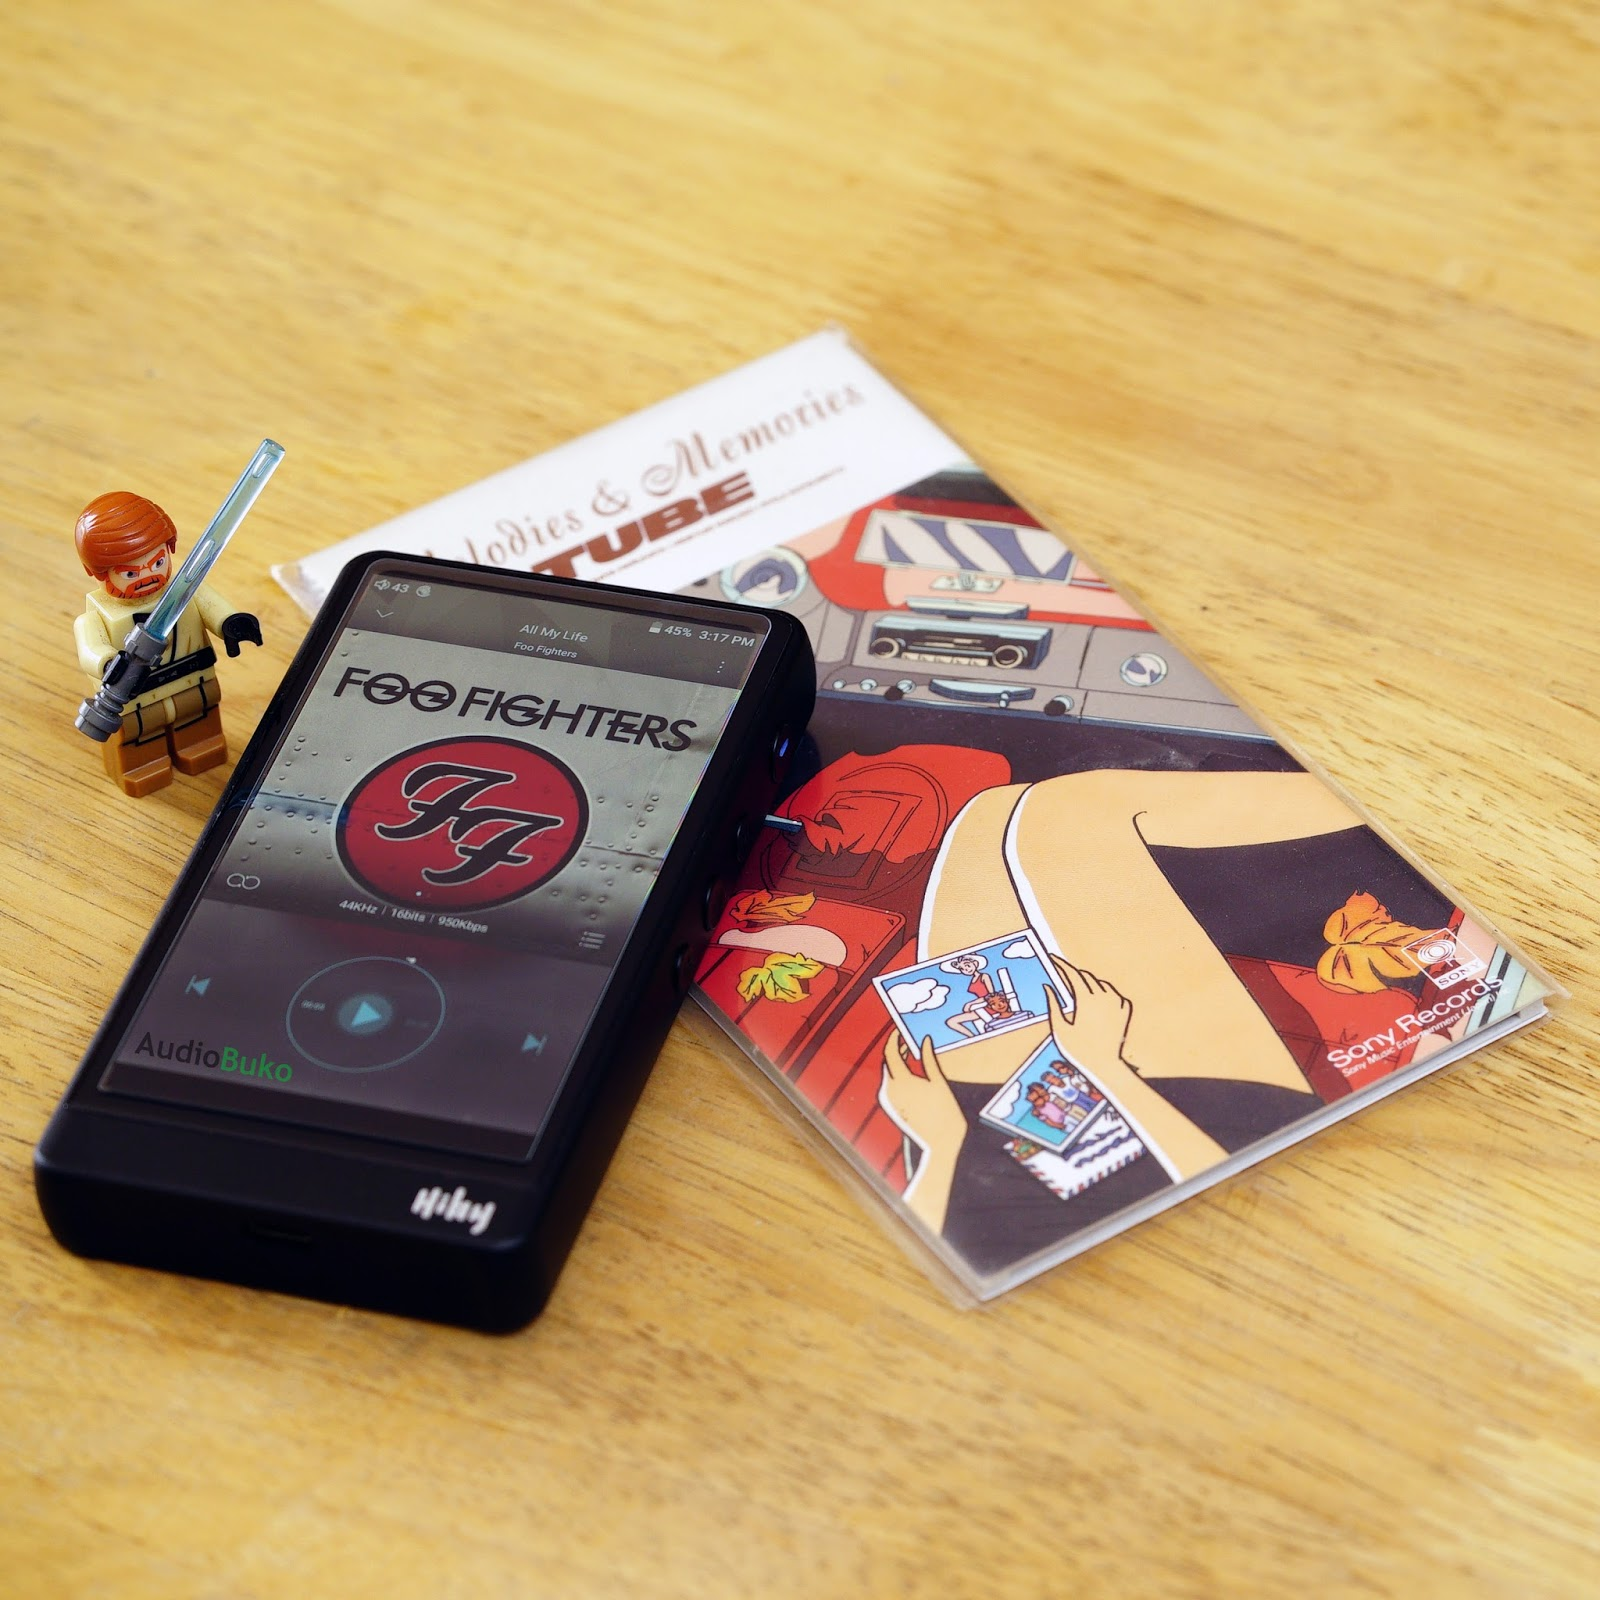 Hiby R6: The Amazing Android Audio Player